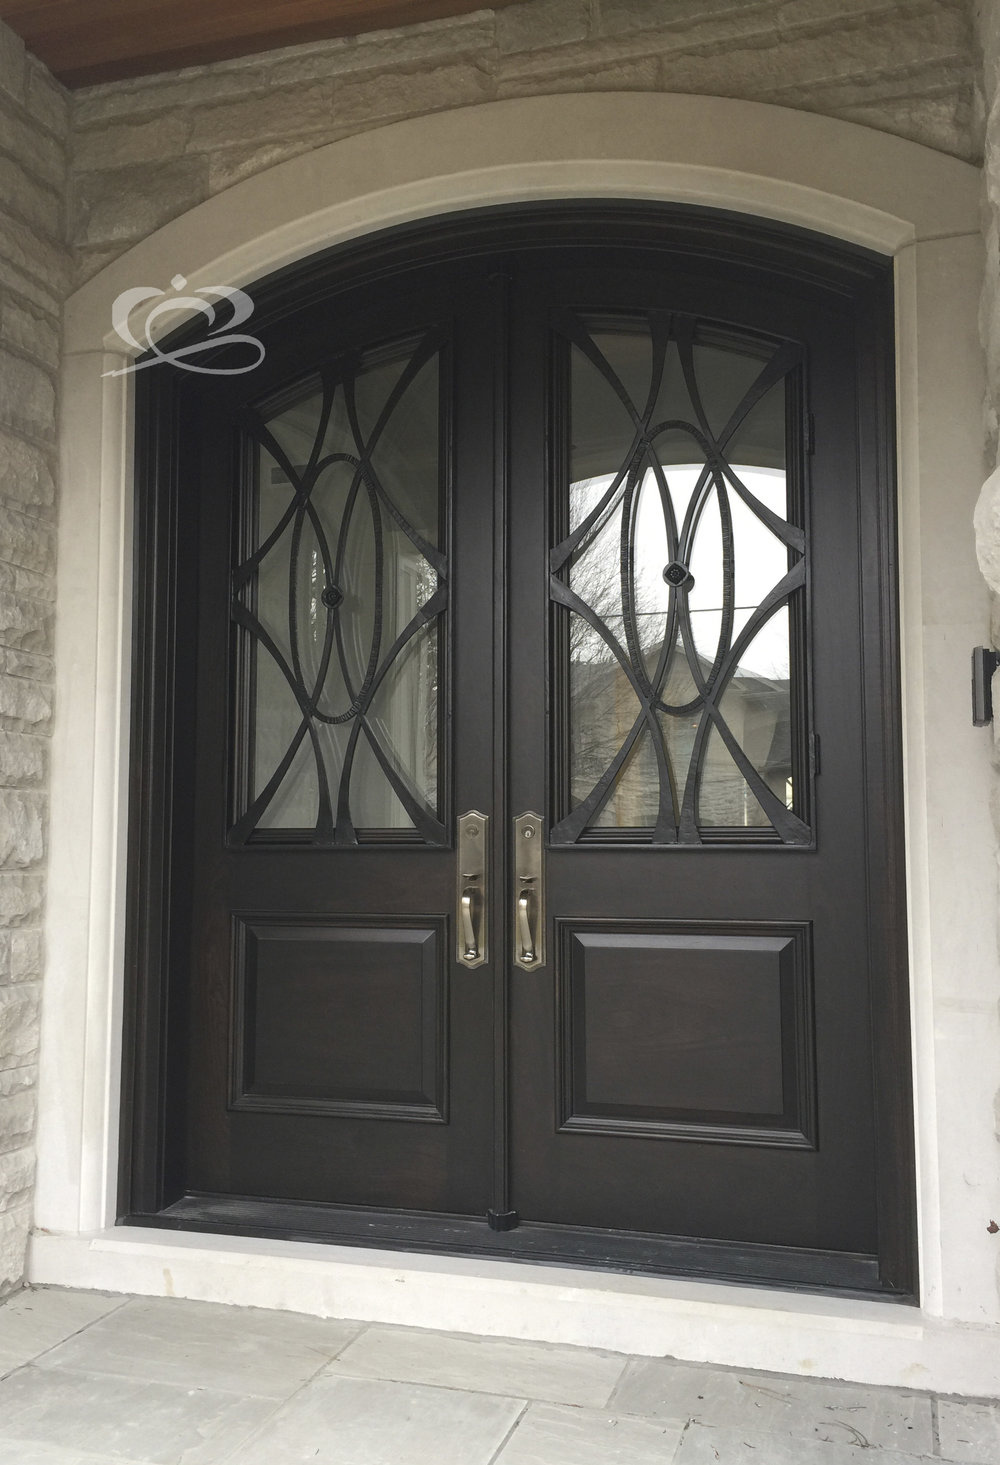 & Double Grand Entrance Doors u2014 Corona Architectural Windows u0026 Doors Inc.